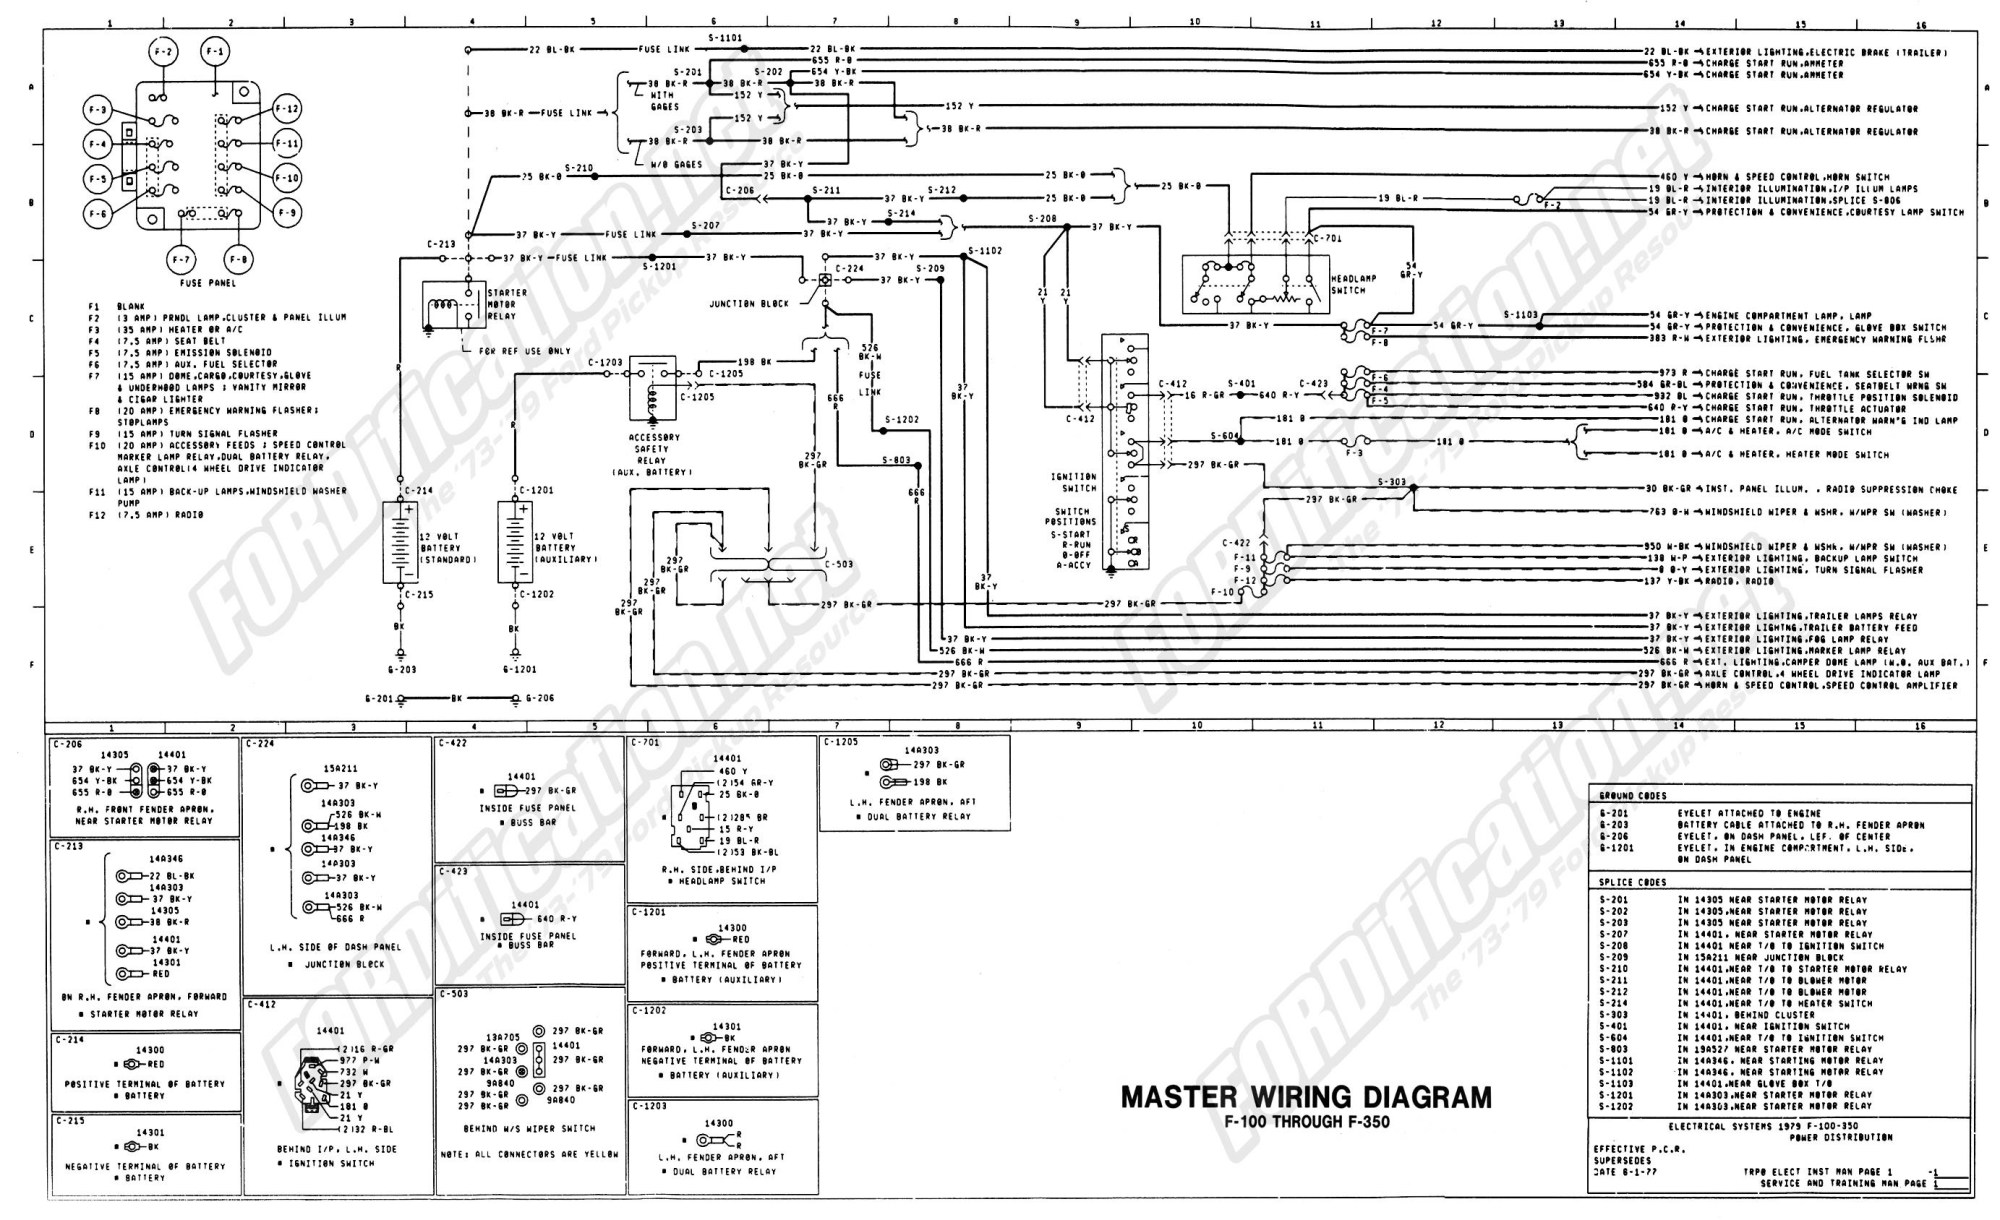 hight resolution of 1997 ford f150 4 6 engine diagram 79 f150 solenoid wiring diagram ford truck enthusiasts forums